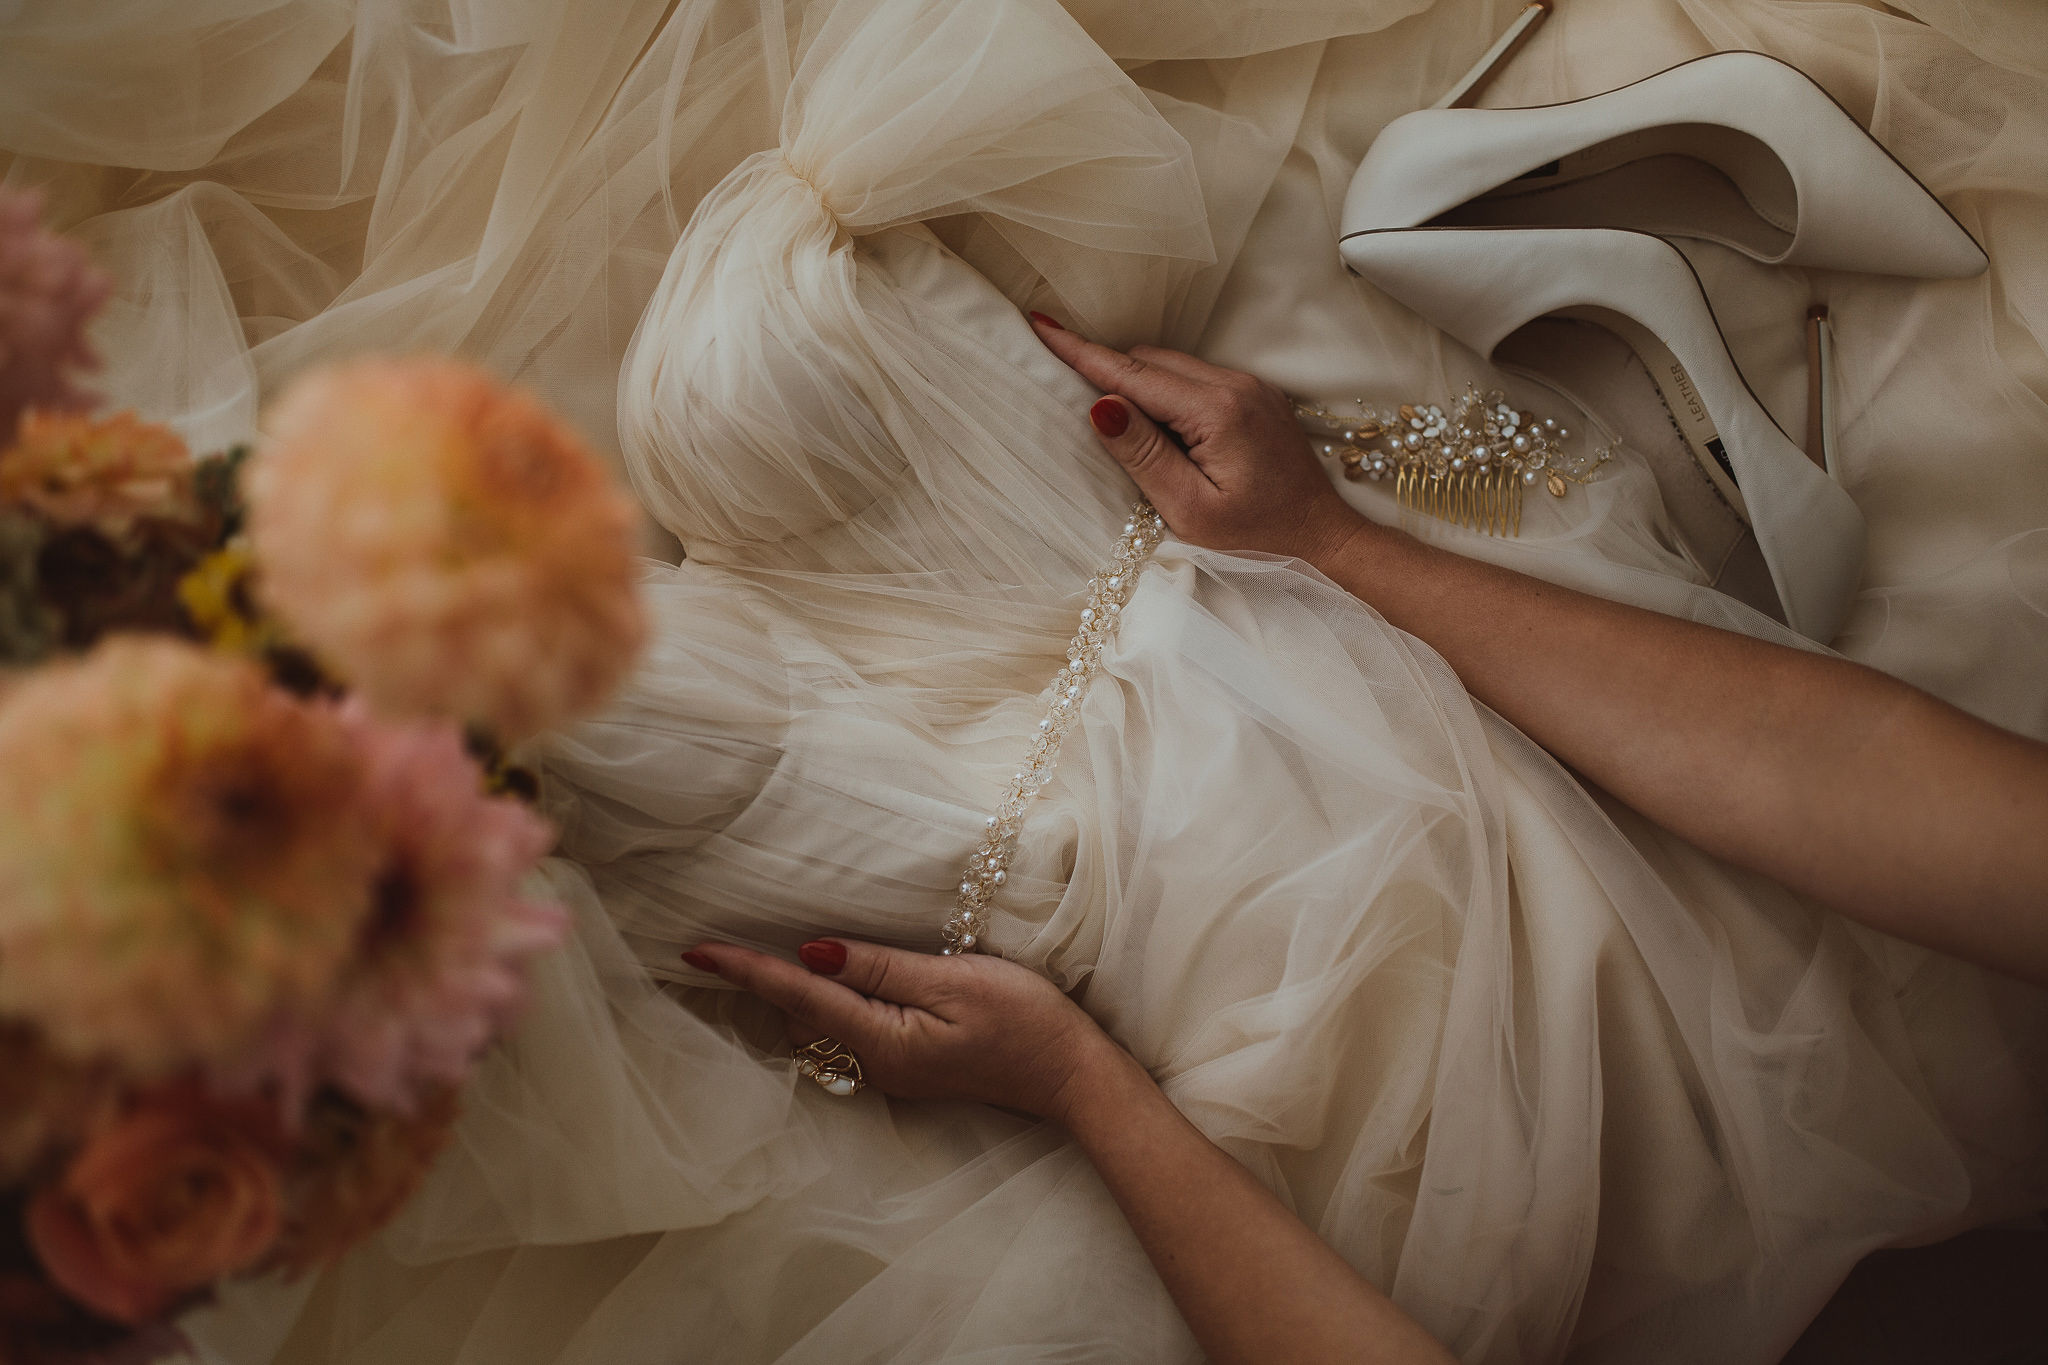 Get inspired this season: feathery tulle, 3D floral lace and more